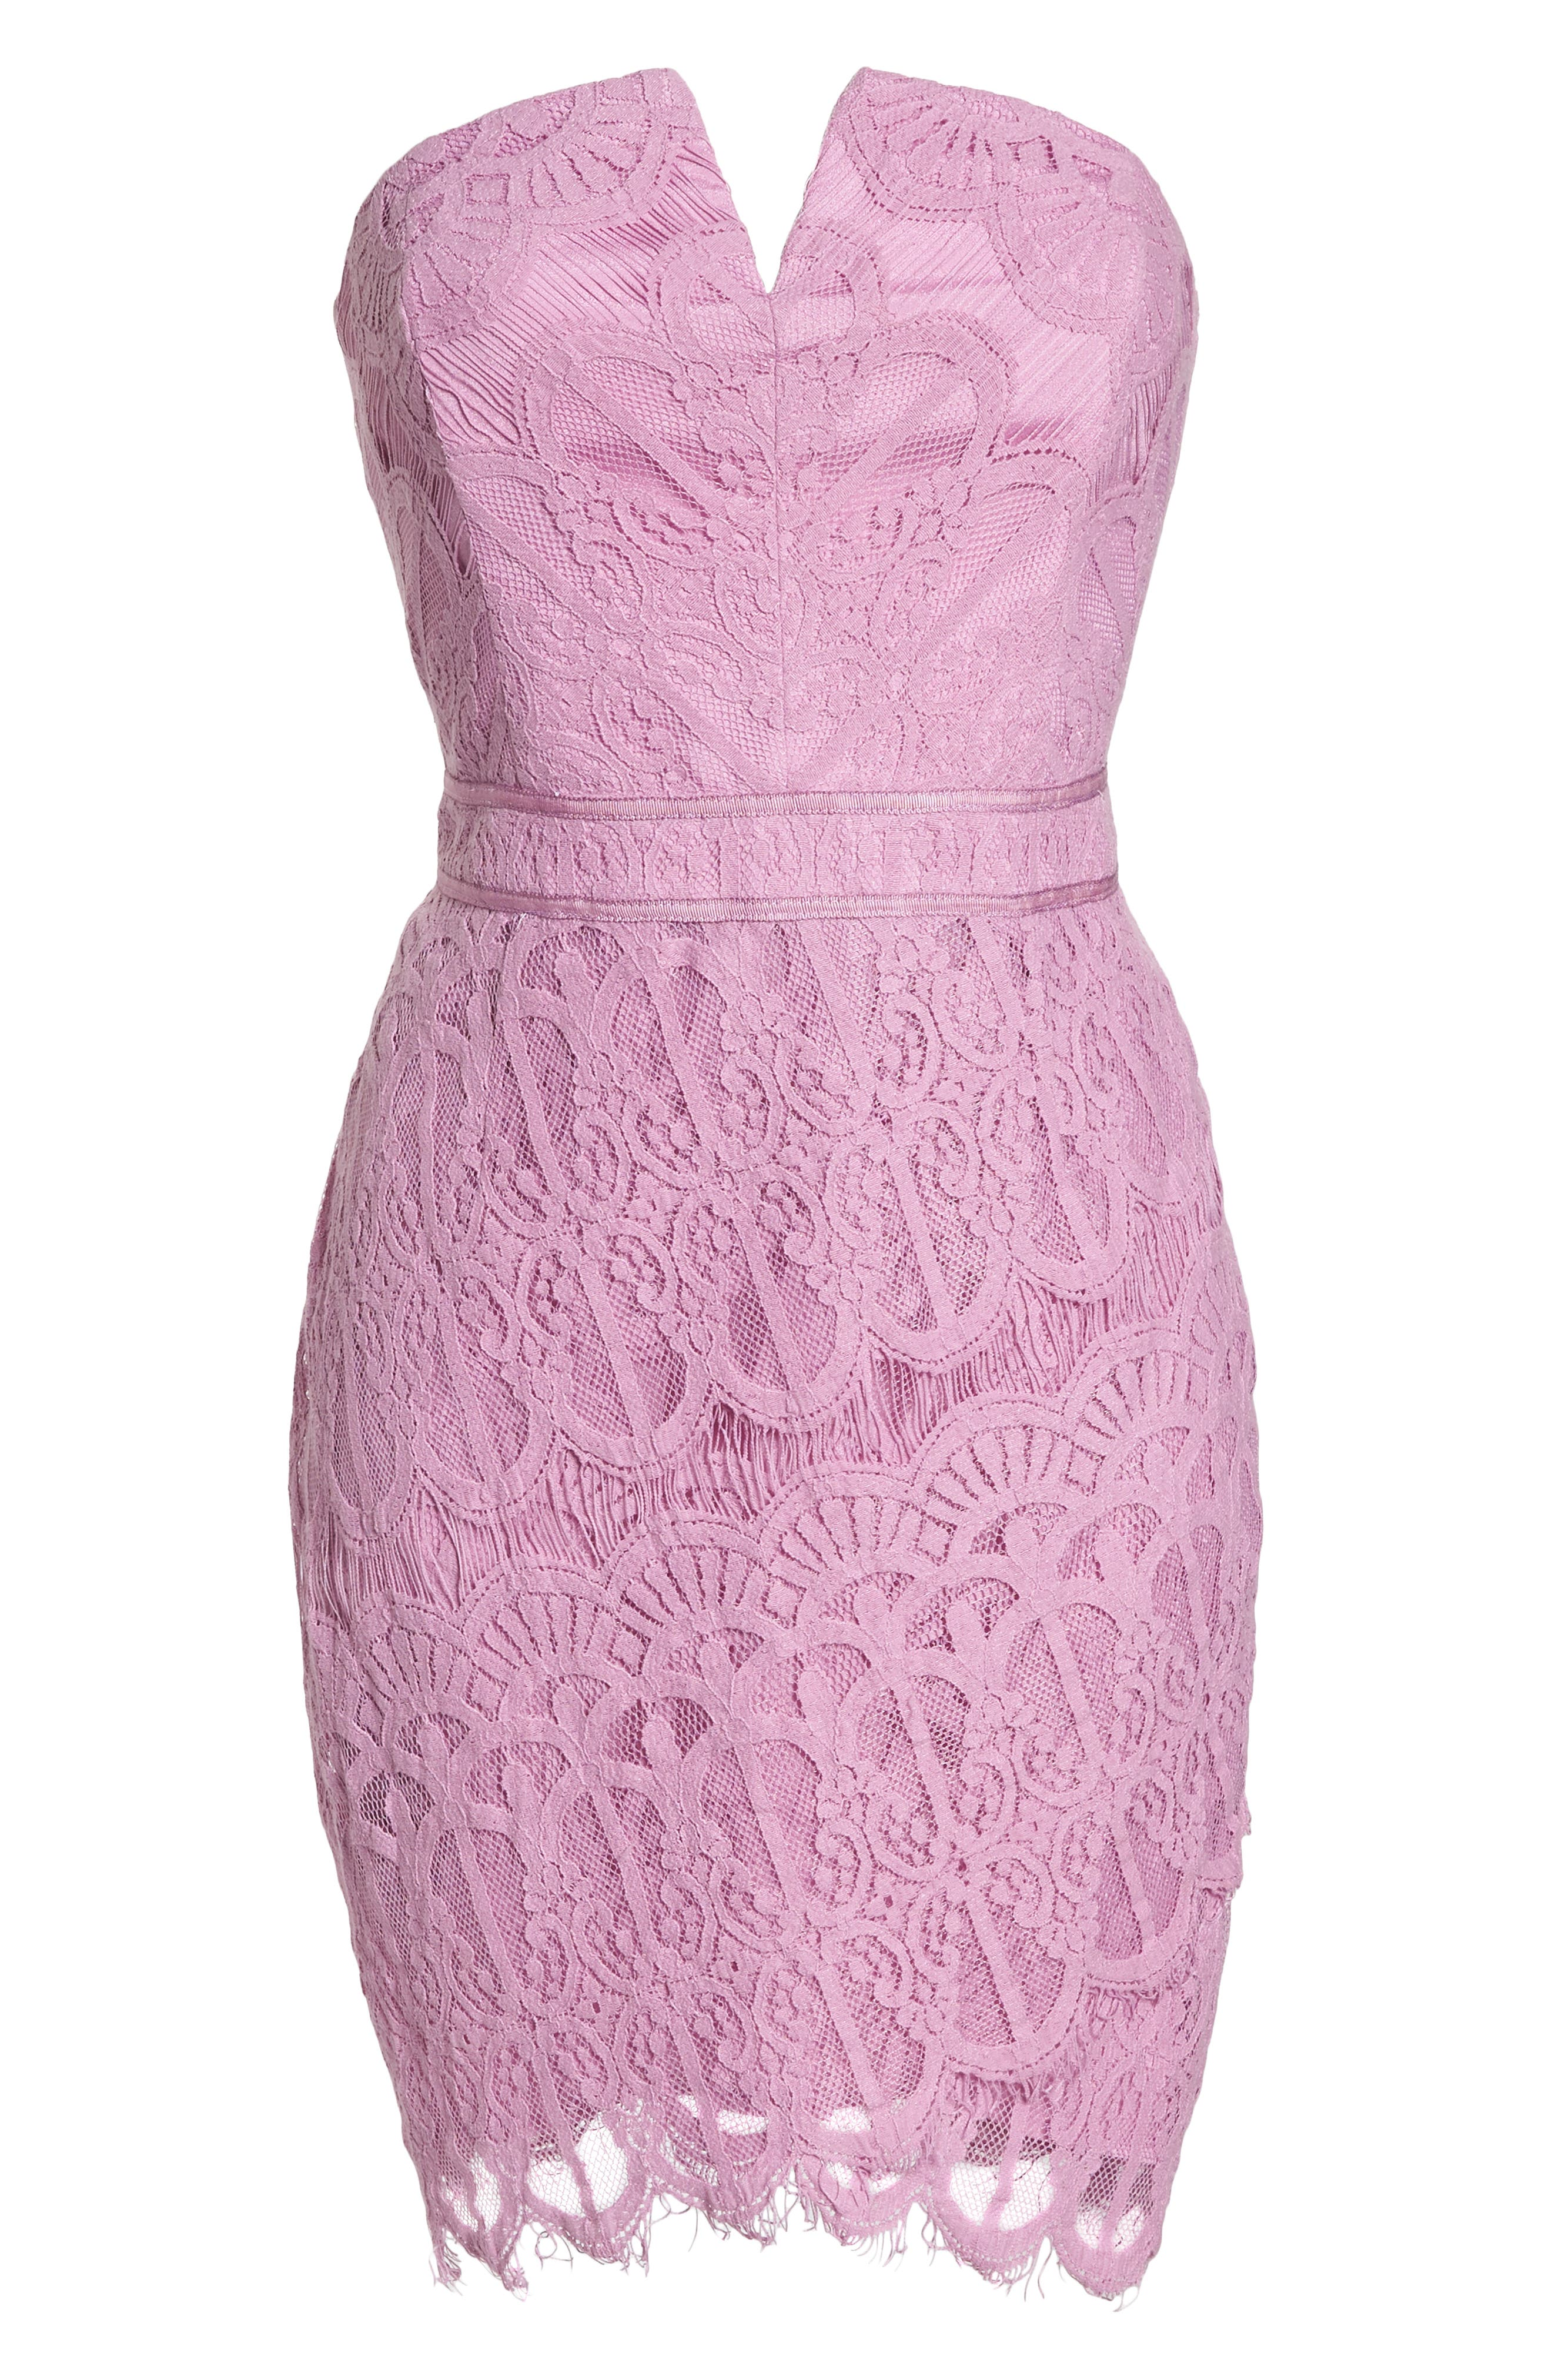 Strapless Lace Dress,                             Alternate thumbnail 7, color,                             532